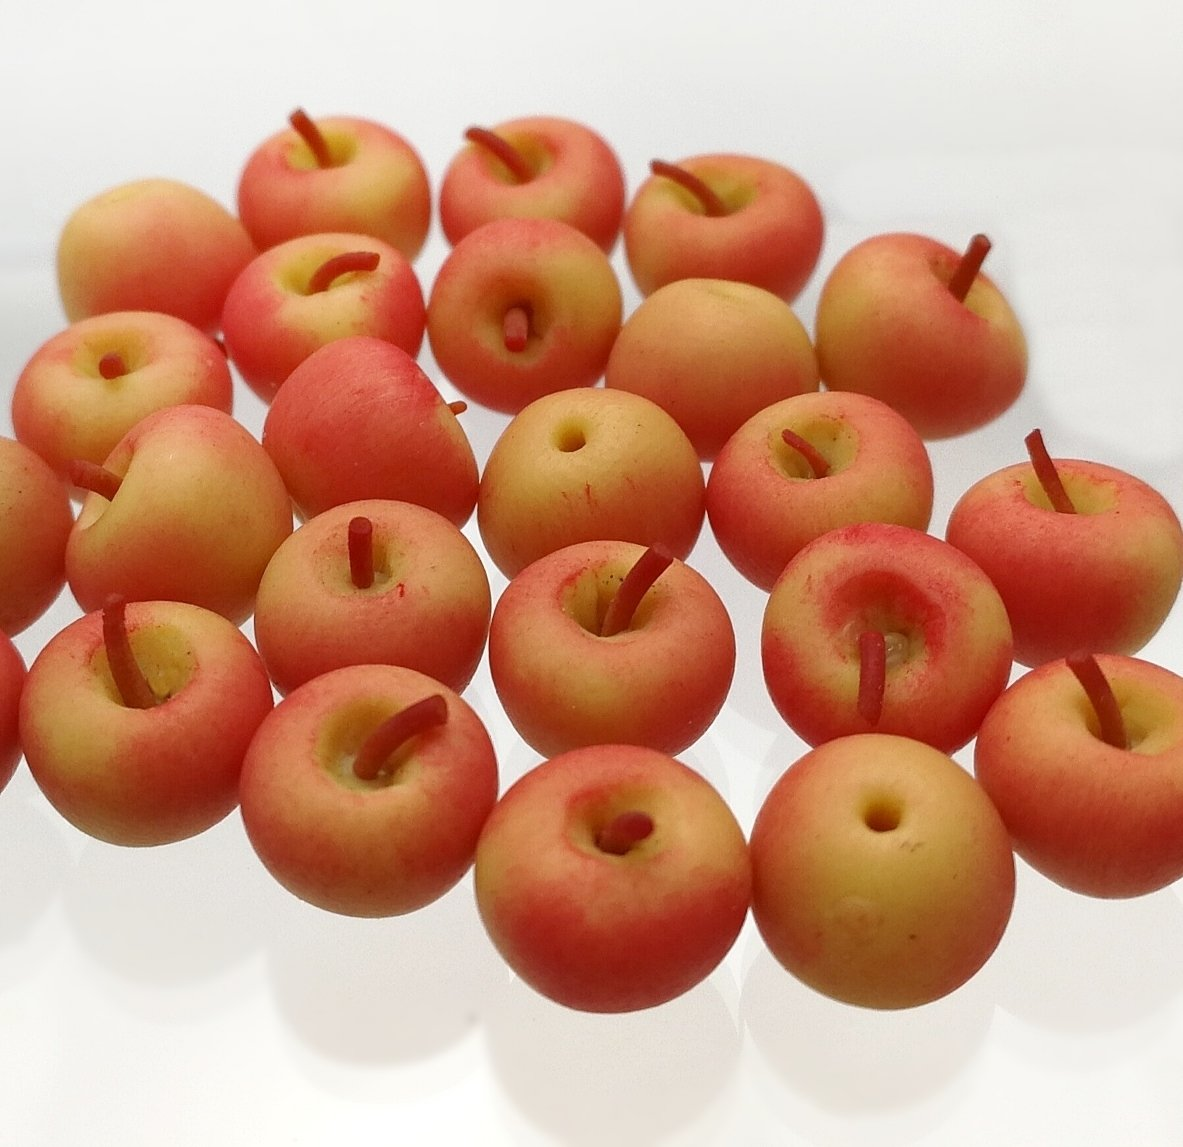 12 pc Polymer Clay Miniature Garden Food Clay Apples Groceries Apple Fruits 1:12